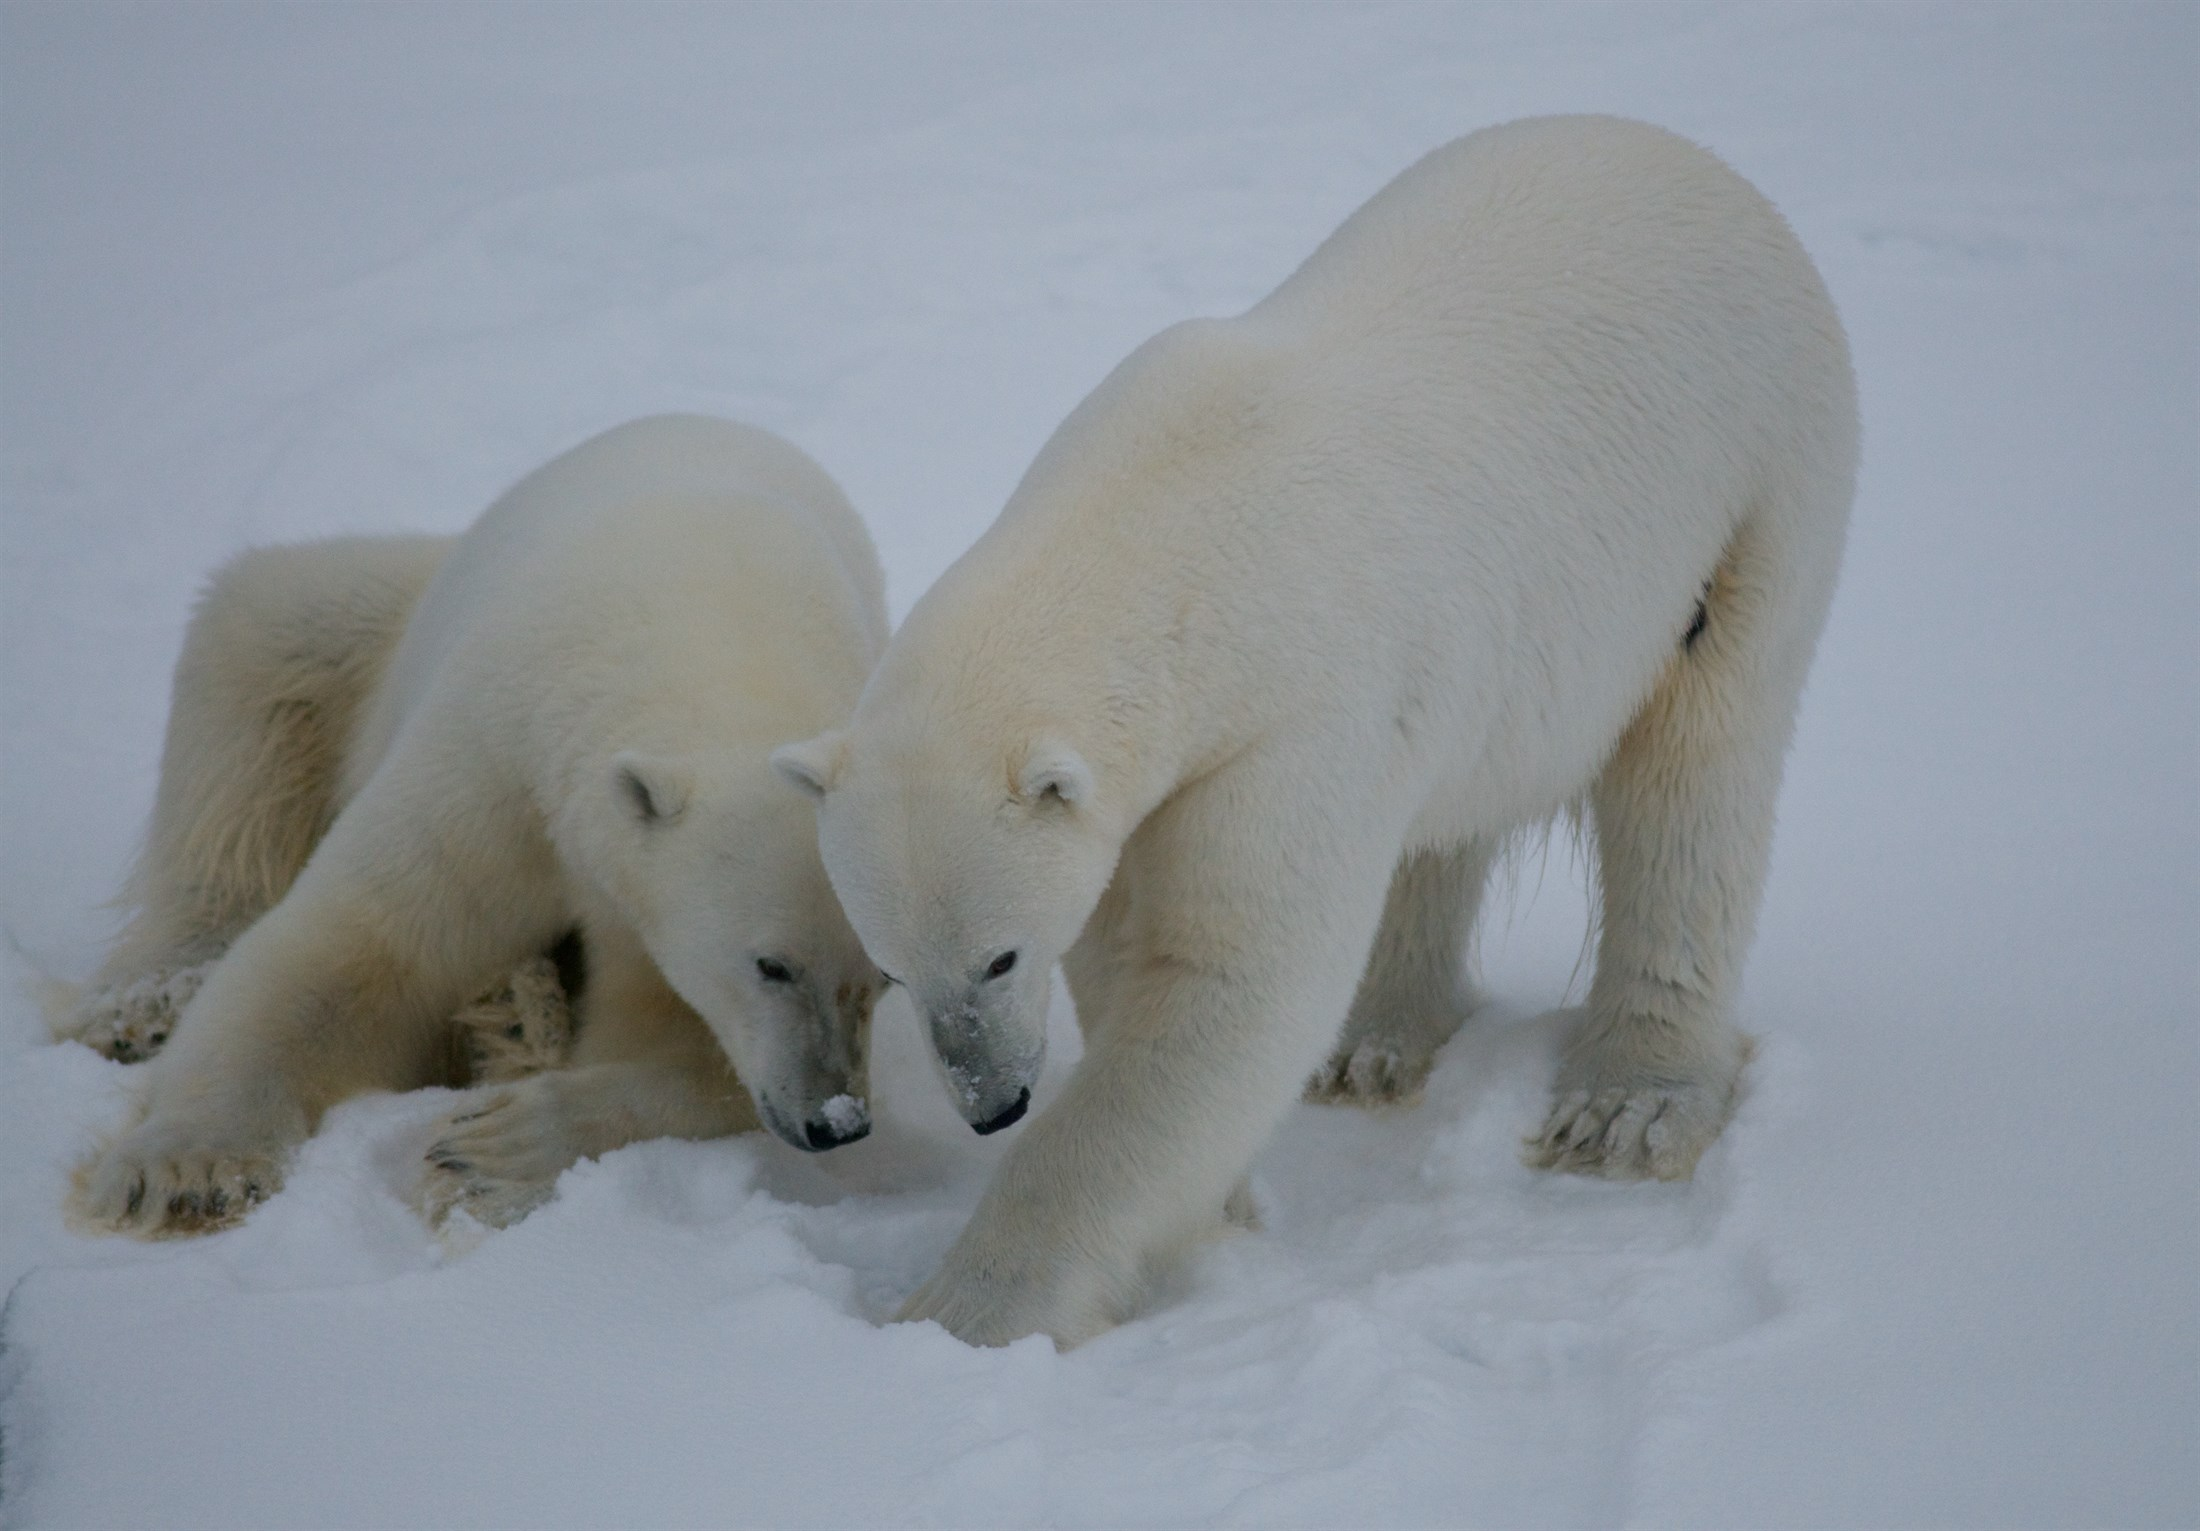 polar-bear-siblings-on-pack-ice-north-of-svalbard_1bec-2200x1531px